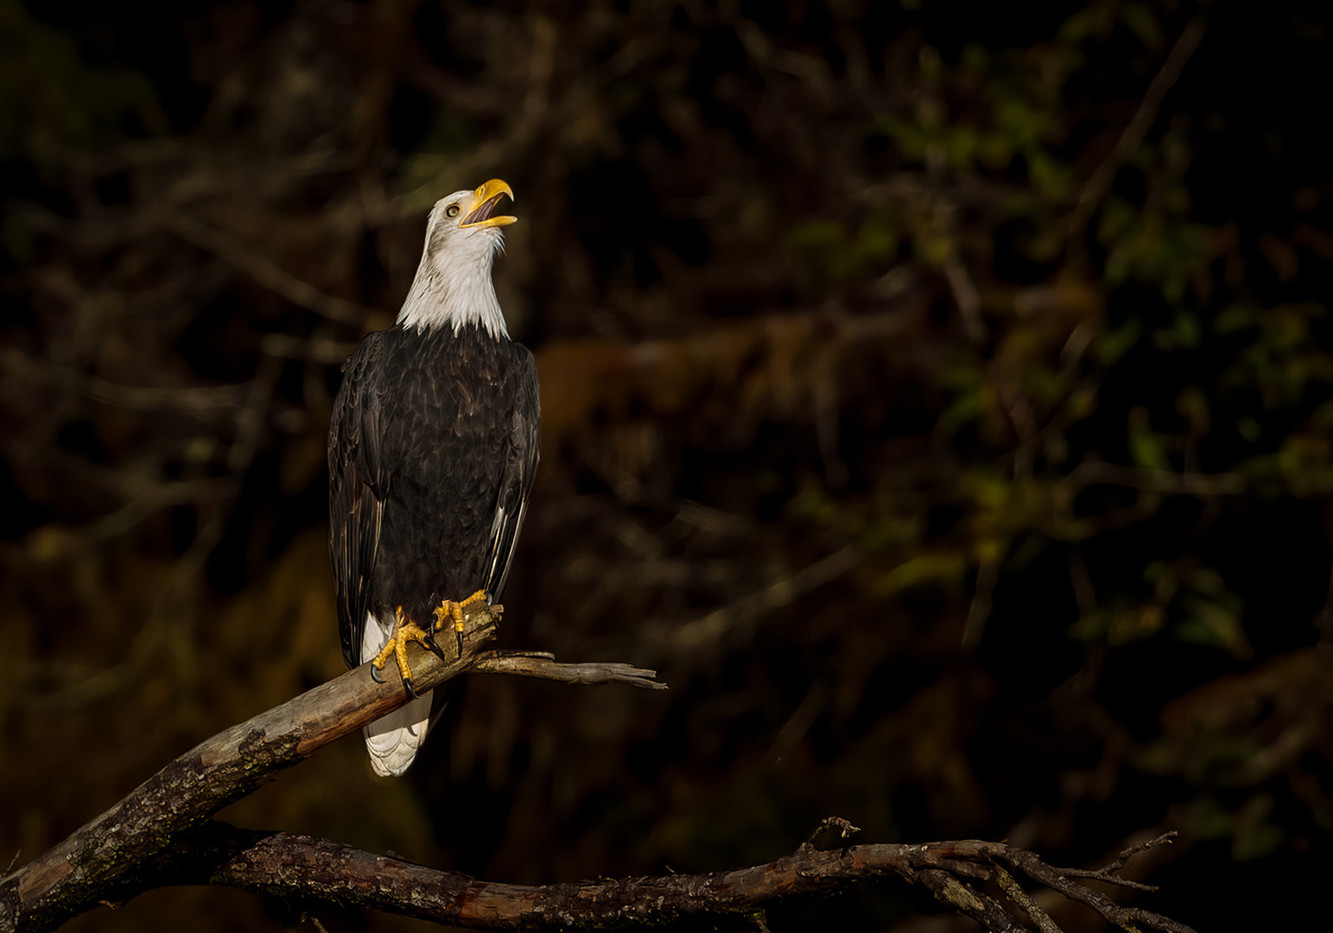 19 A BALD EAGLE CALLS INTO THE WILDERNESS by David Godfrey